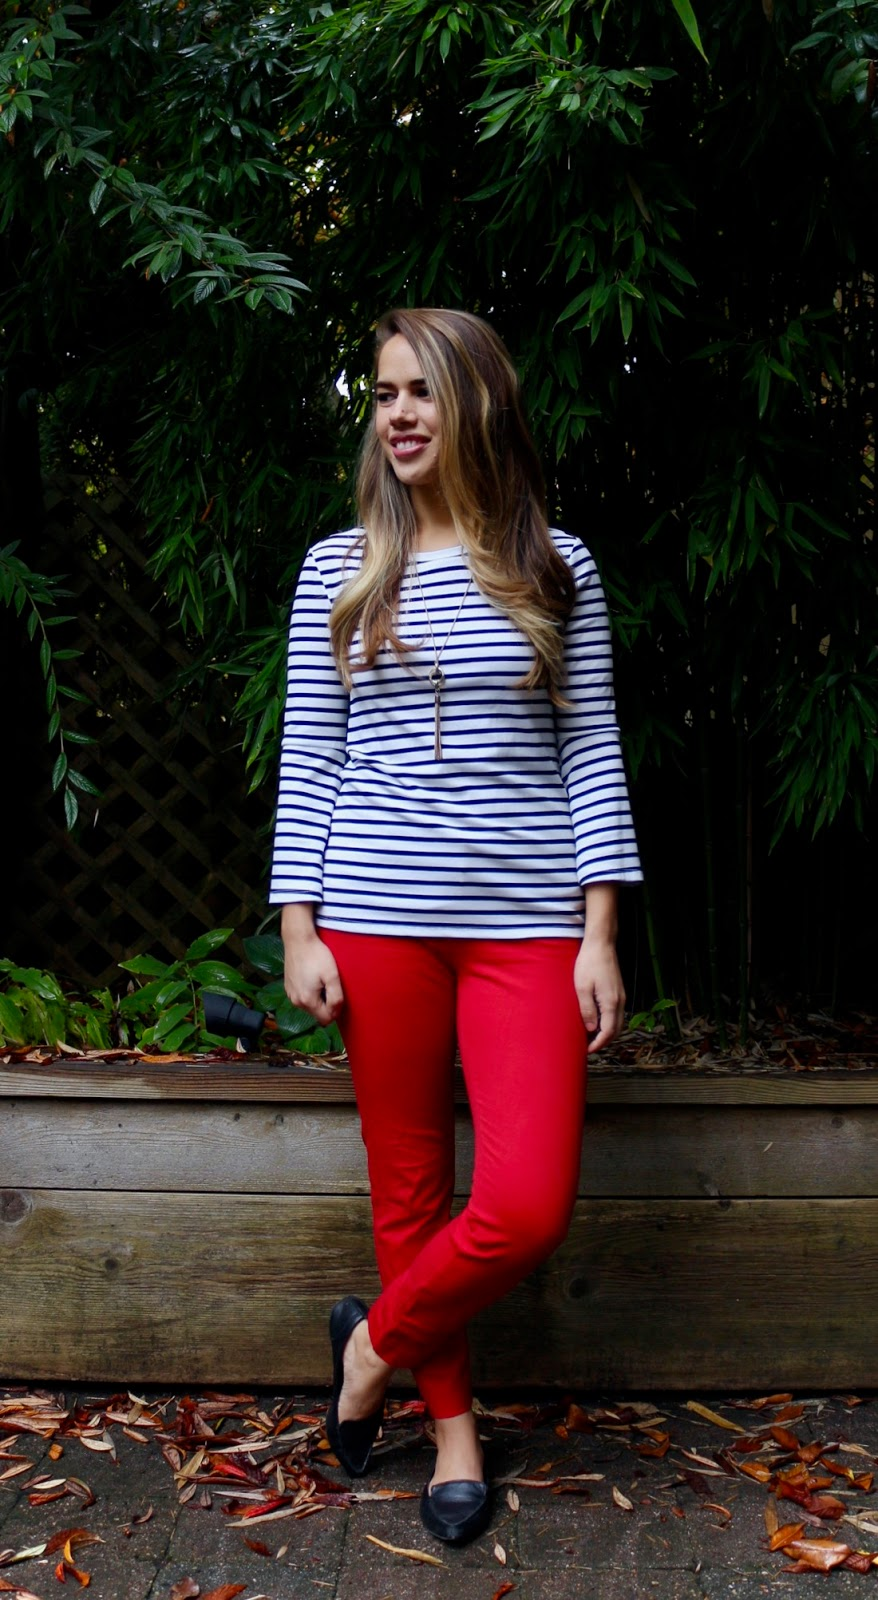 Jules in Flats - Striped Bell-Sleeve Top with Red Ankle Pants (Business Casual Fall Workwear on a Budget)